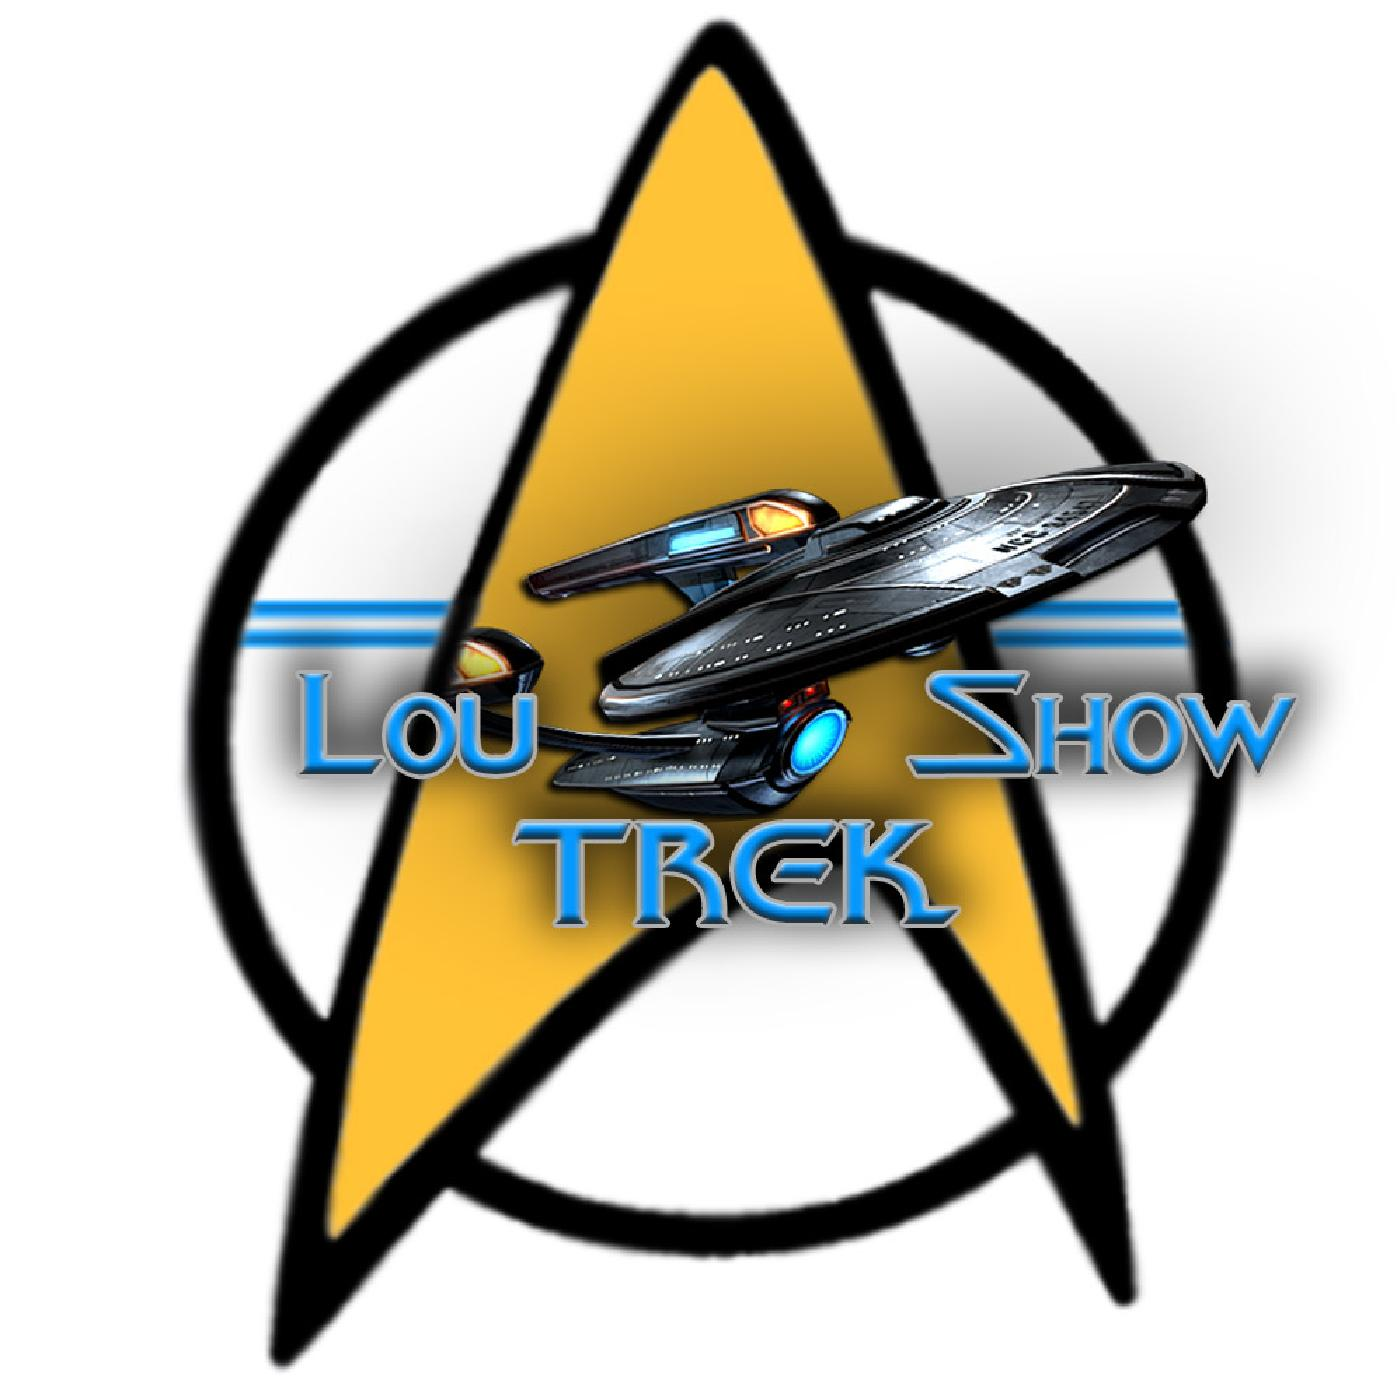 Lou Trek Show / The Battle Bridge